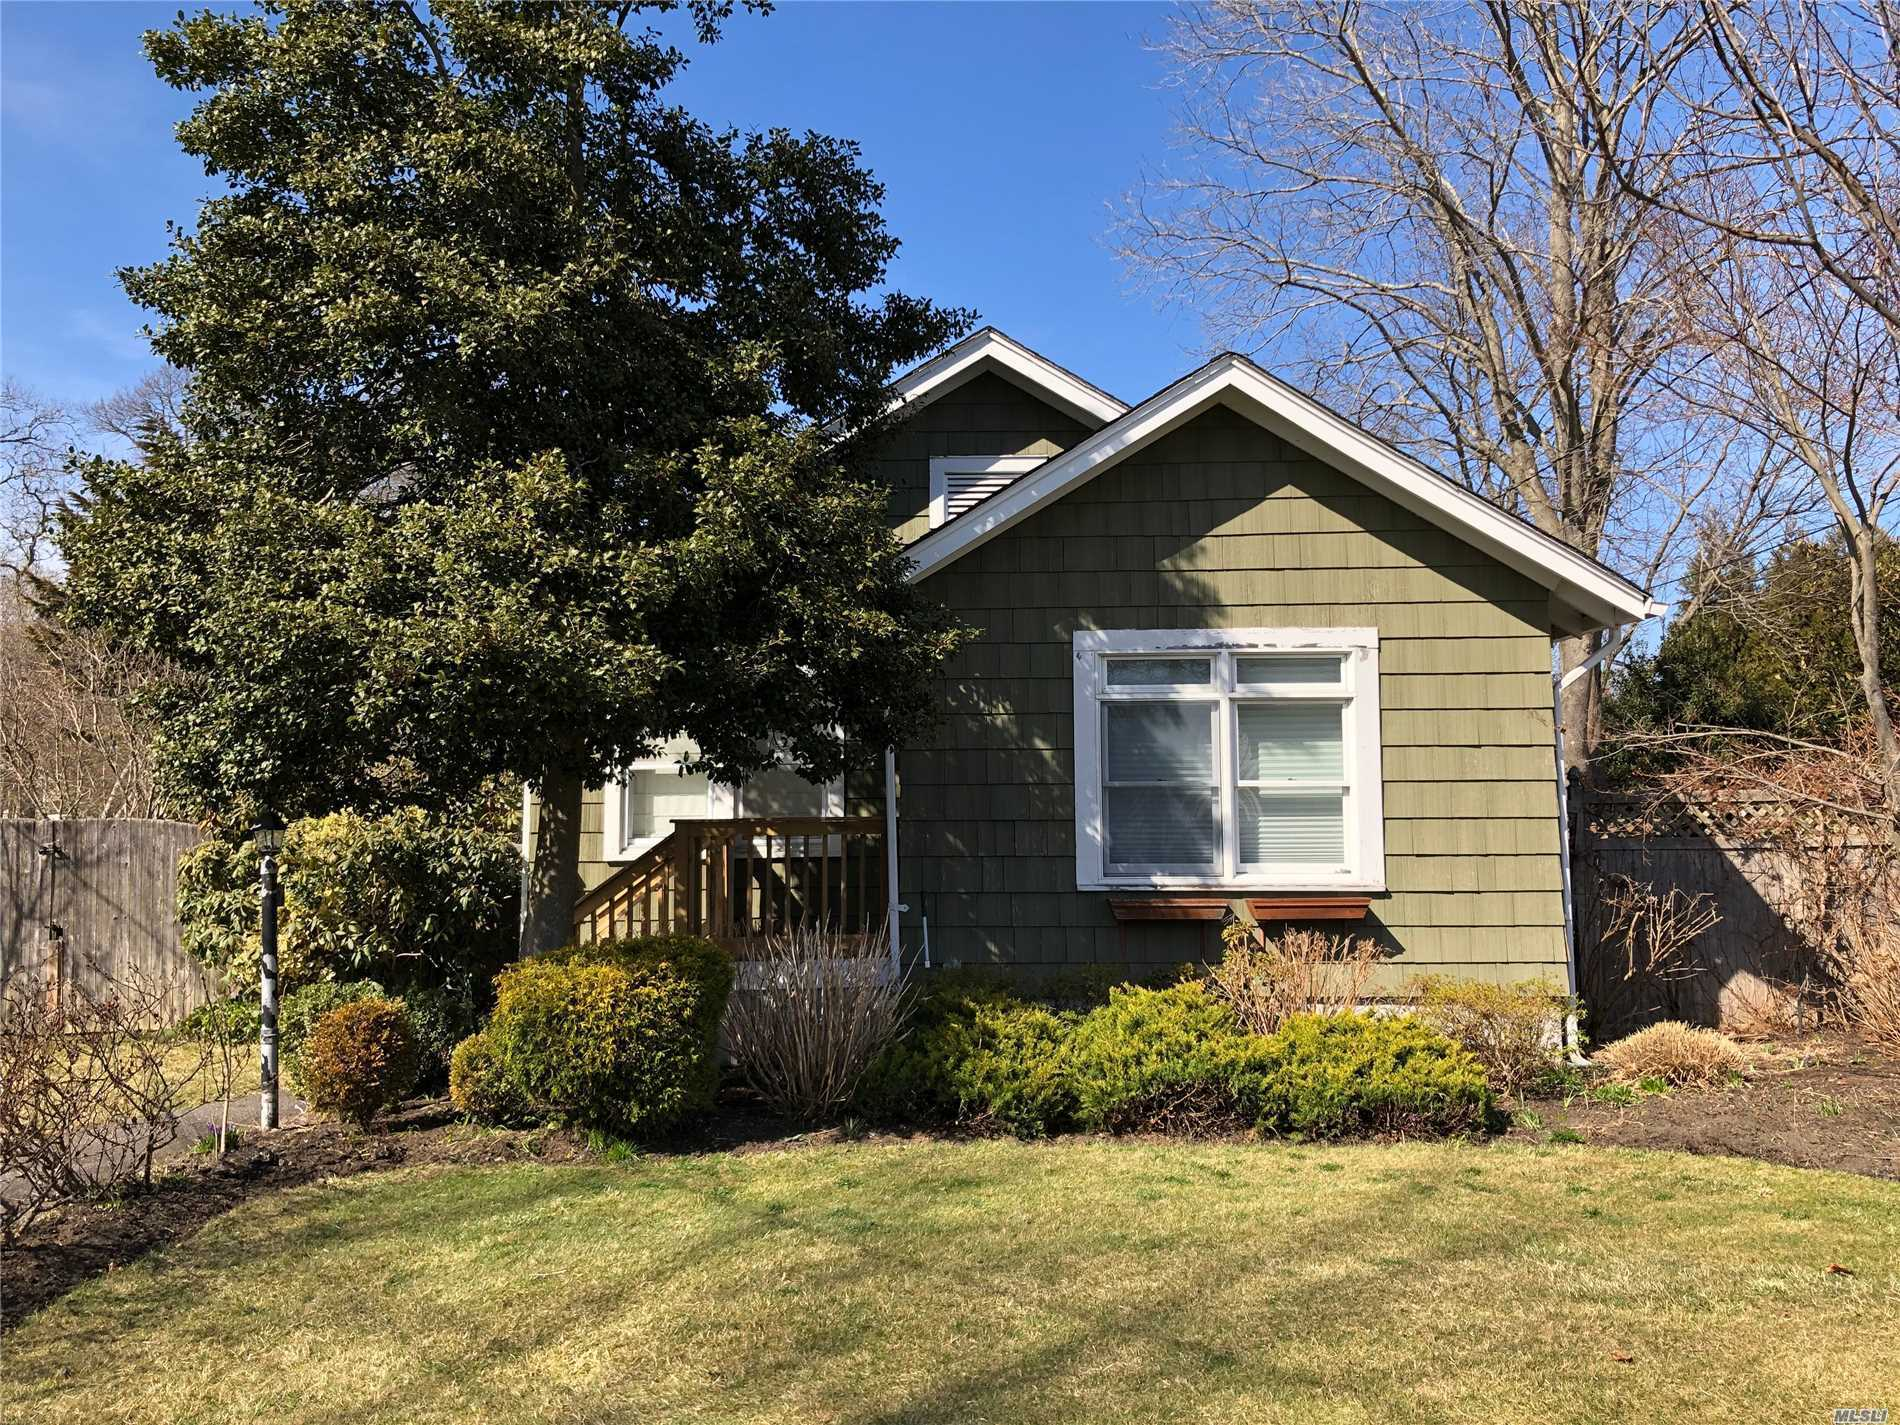 Adorable home with wood floors, granite EIK w/ washer/dryer and ss appliances. Fenced yard, Deck off the dining room. Pretty block.